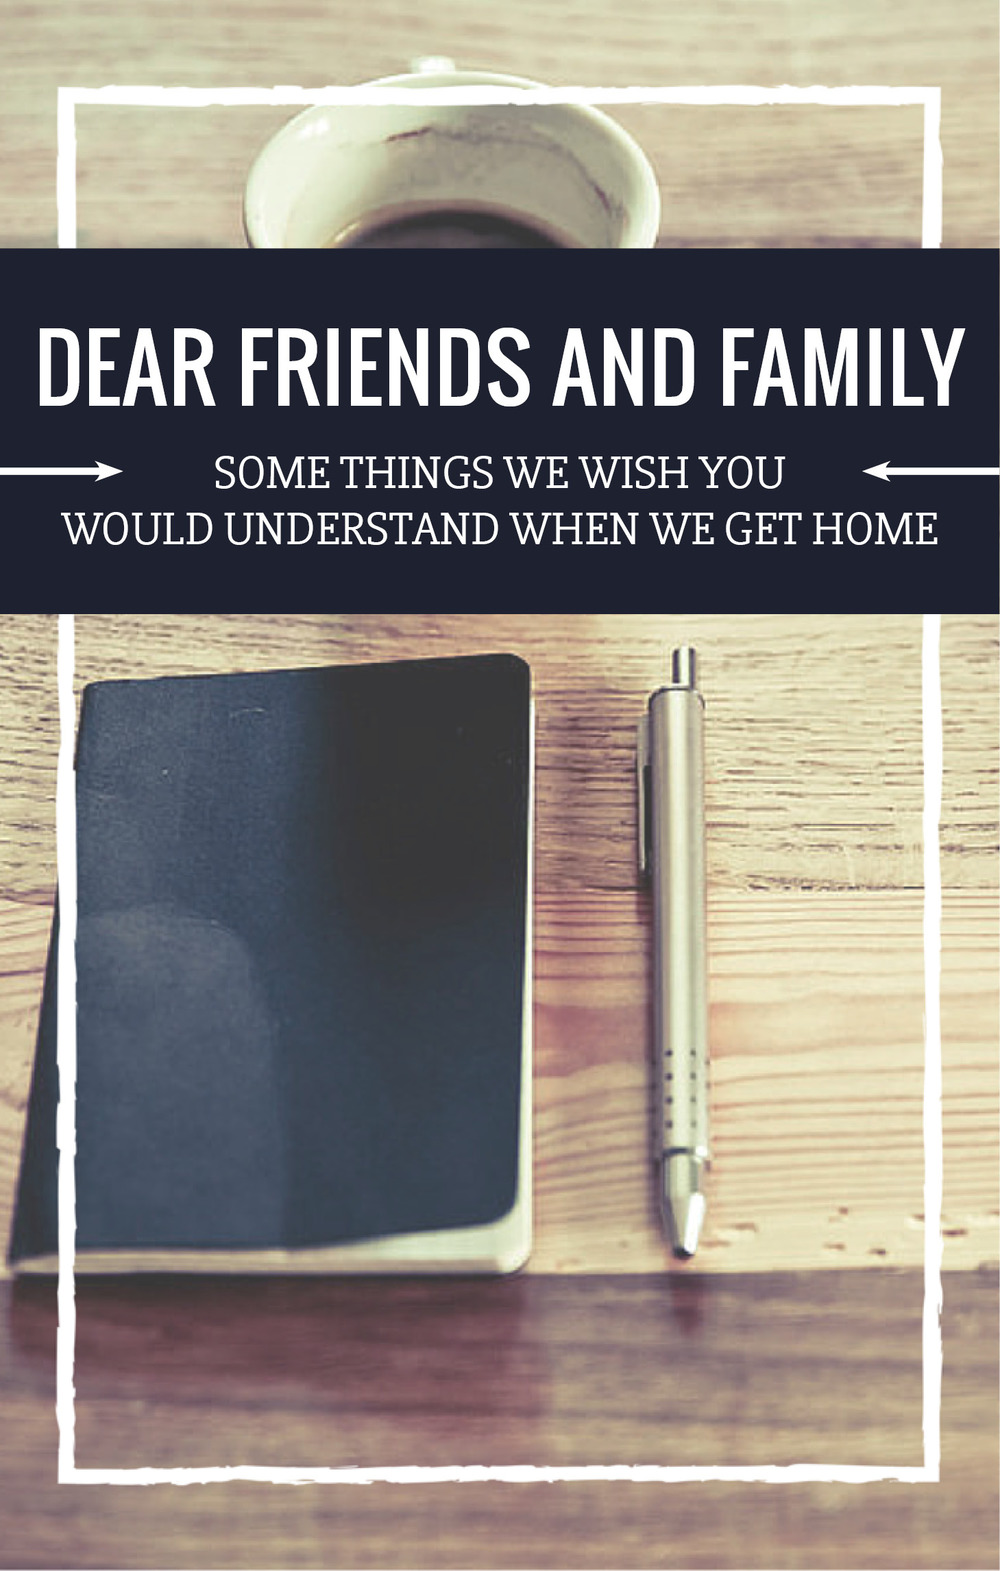 Dear Family and Friends: some things we hope you will understand - NJS Design Company